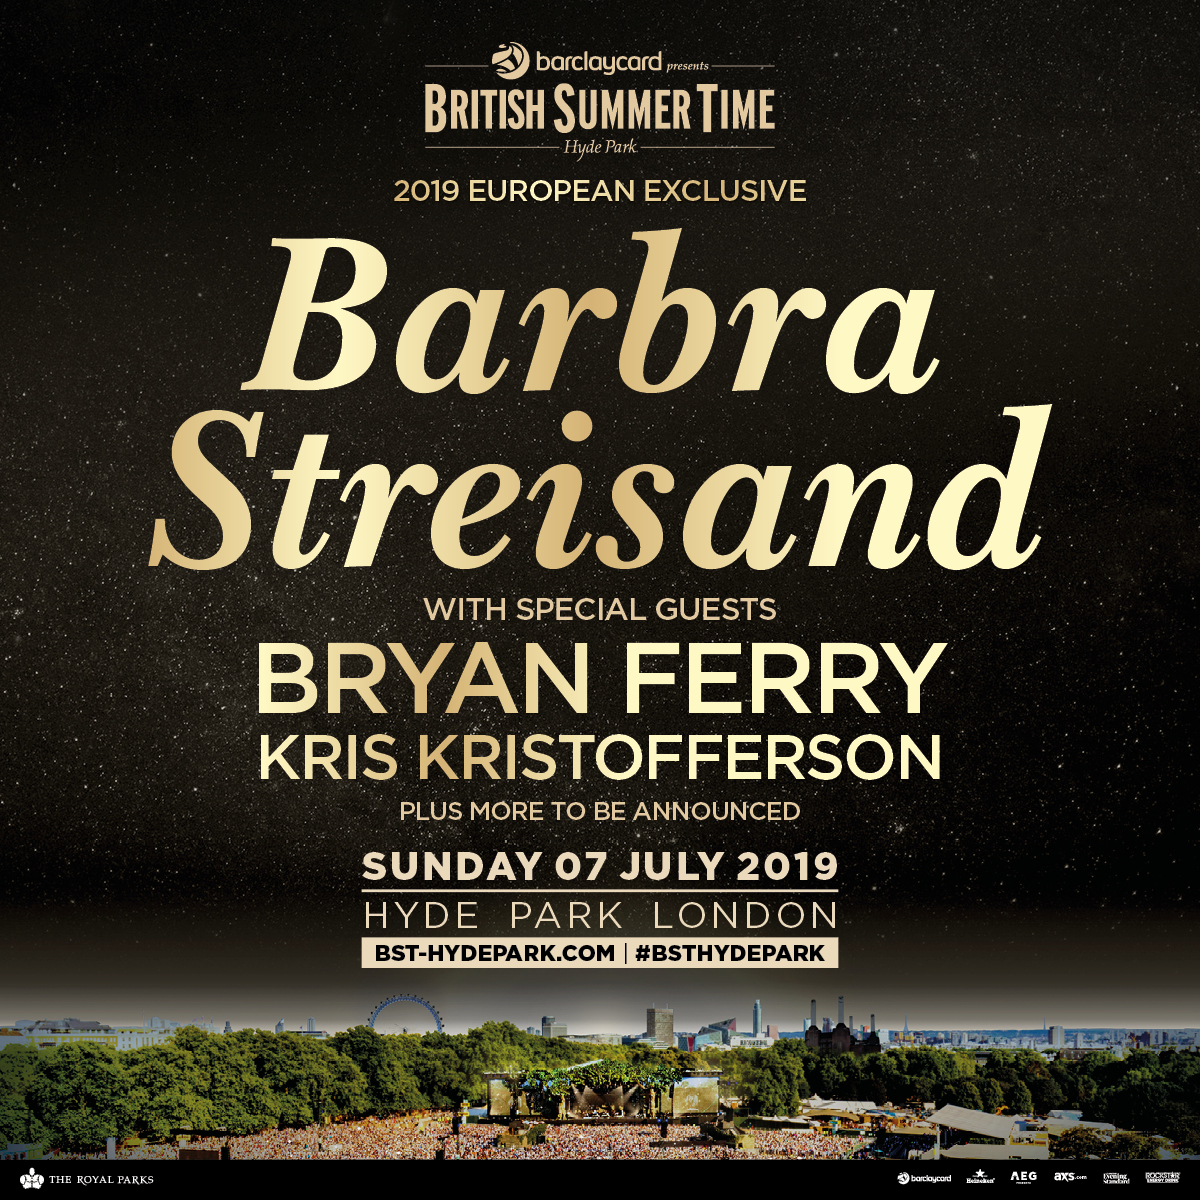 910bf2e5a Kris Kristofferson Joins Barbra Streisand AT BST Hyde Park – Could This  Mean A Possible 'A Star Is Born' Reunion on stage?